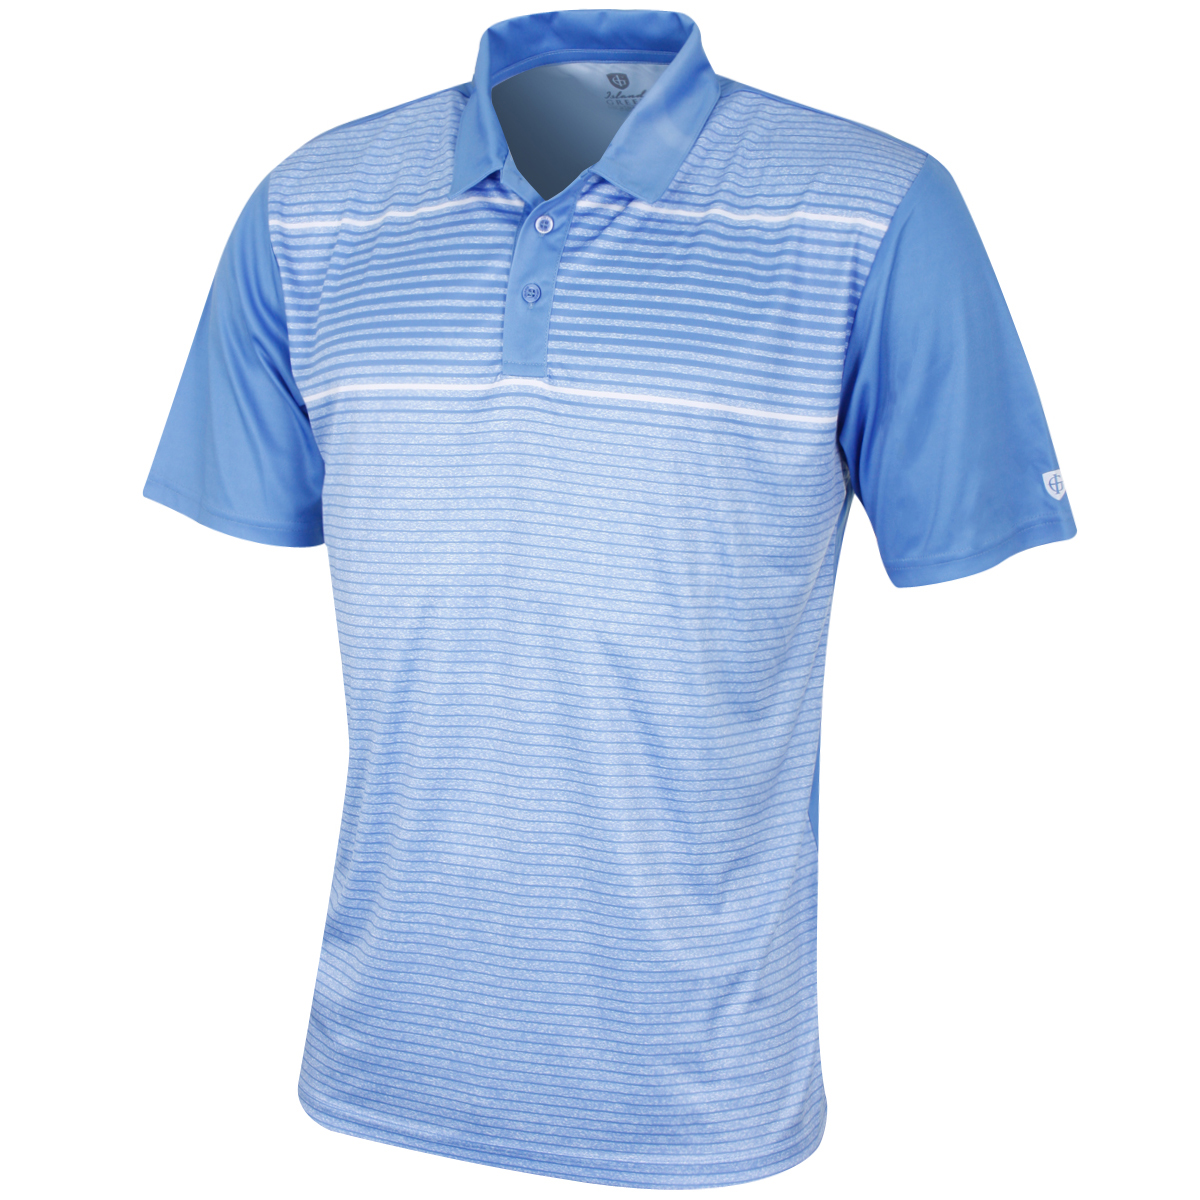 Island Green Mens Quick Drying Moisture Wicking Durable Golf Polo